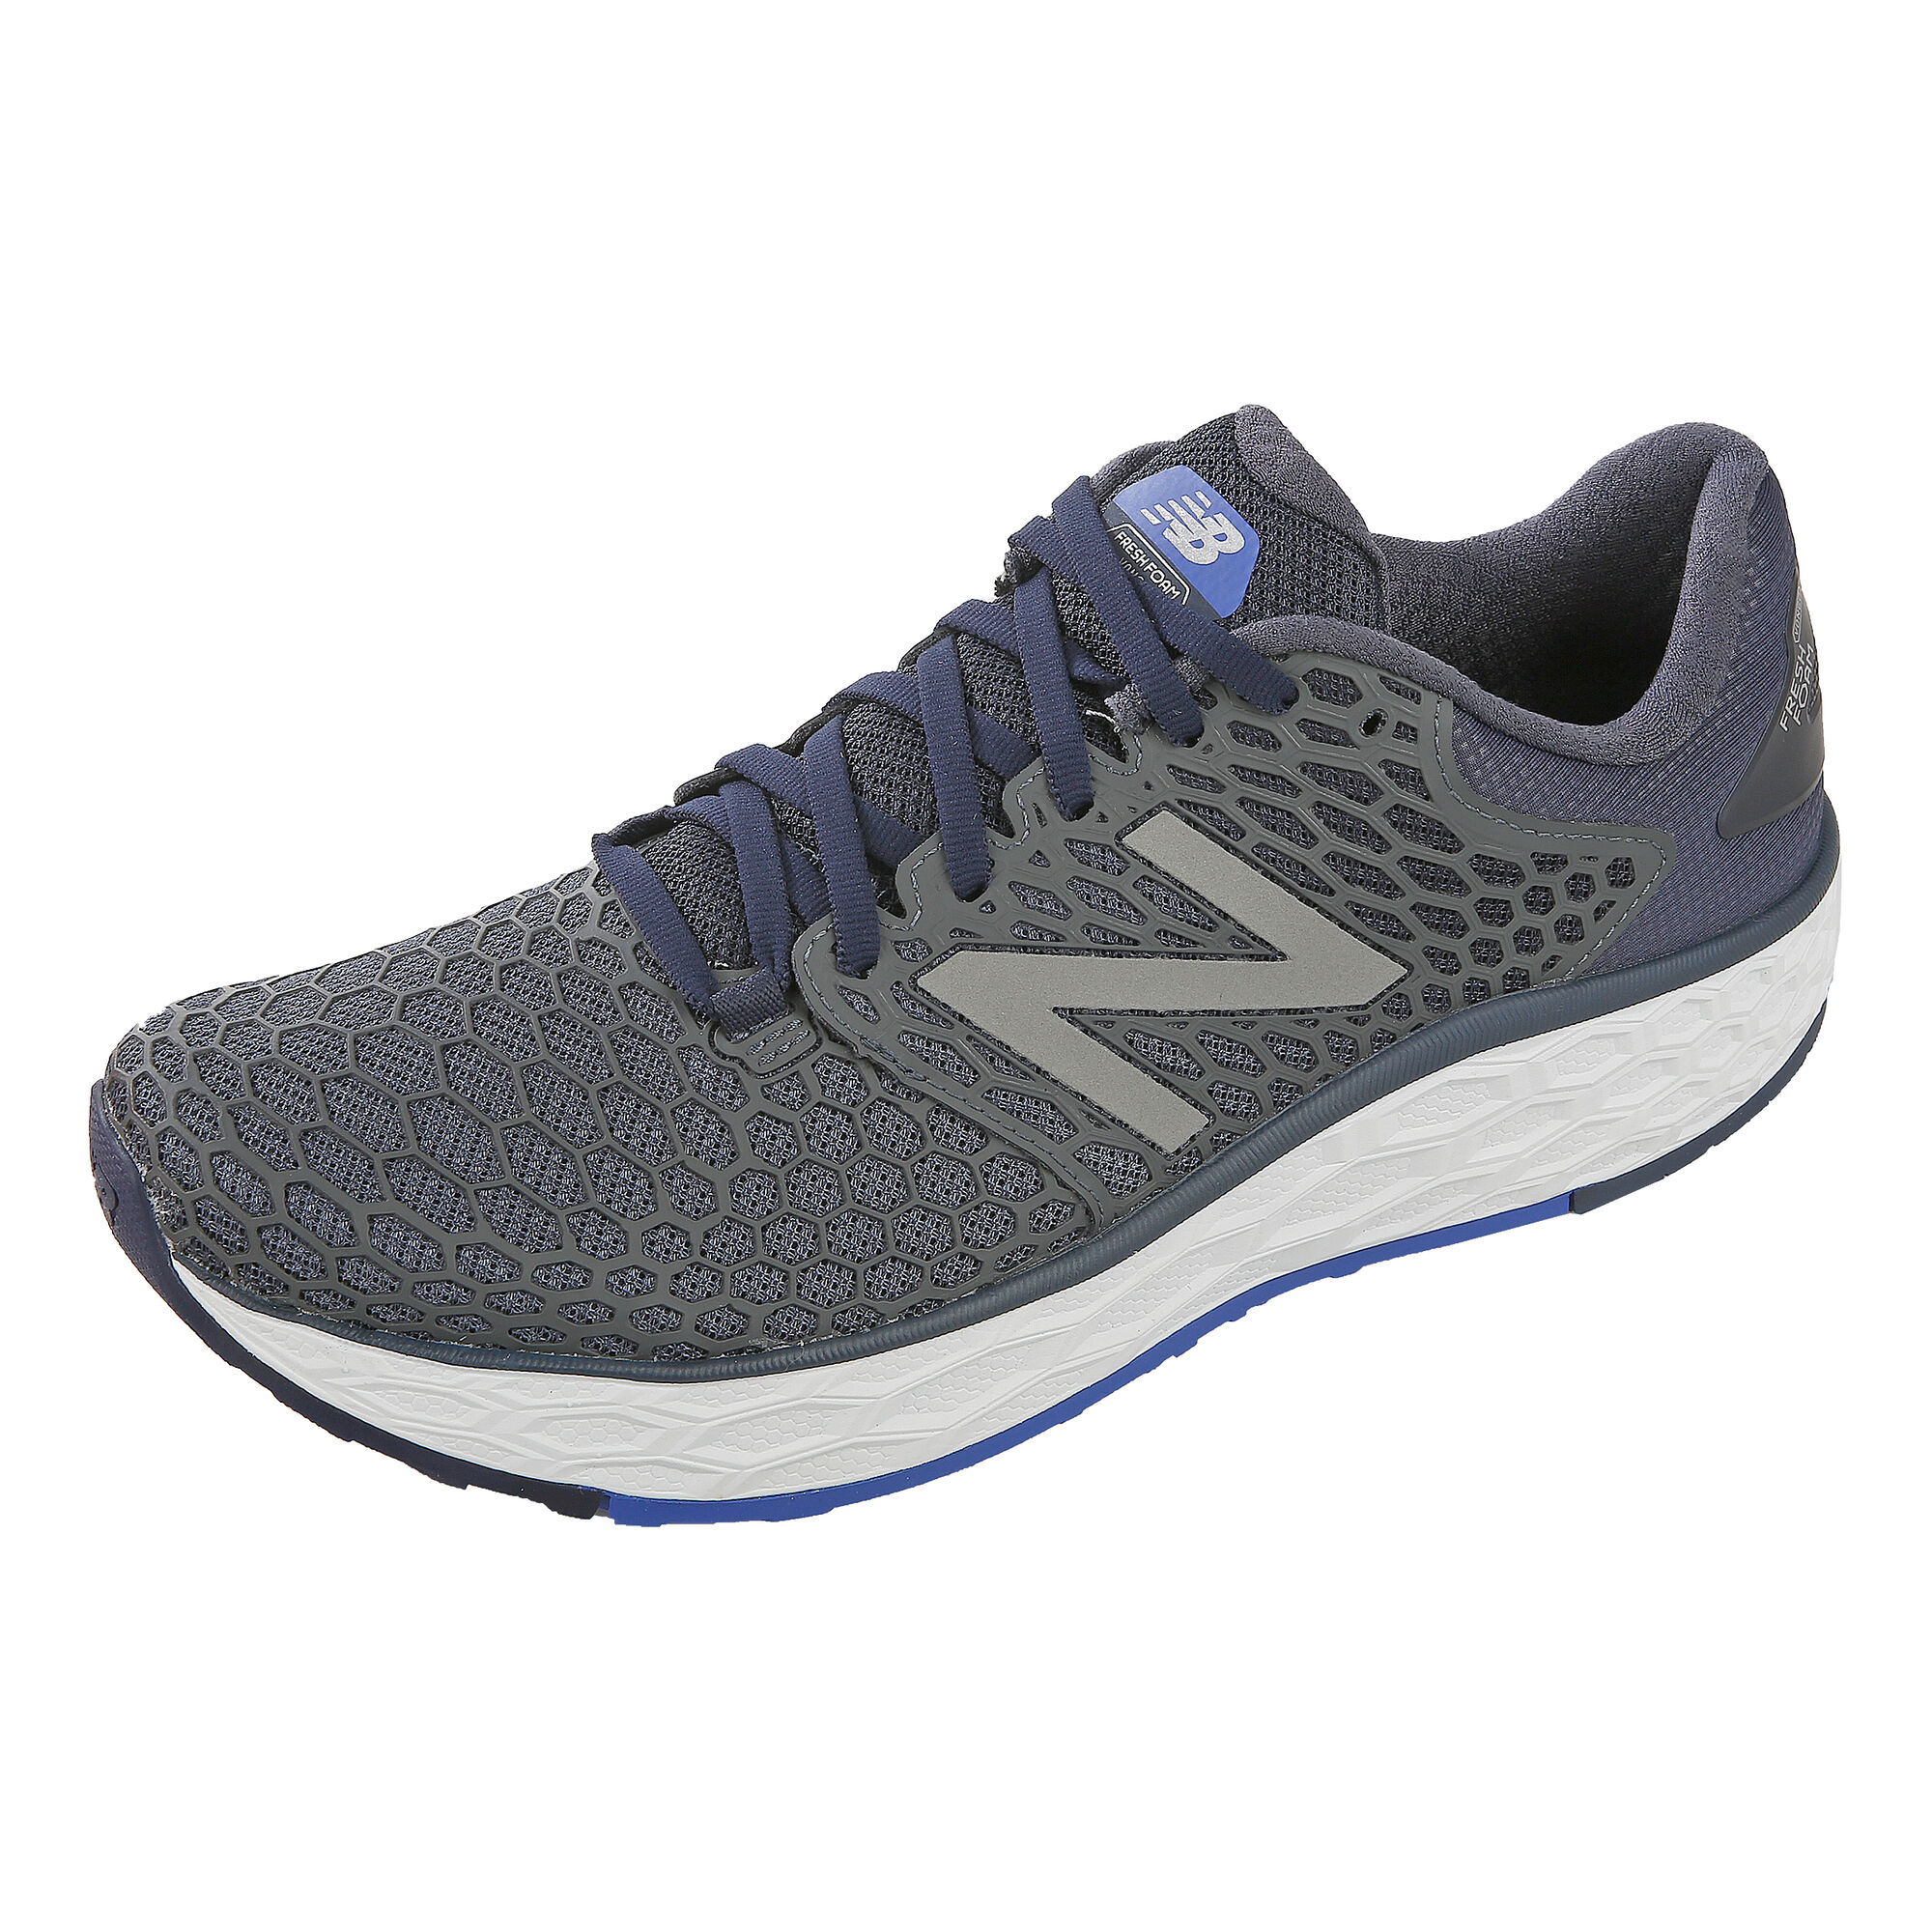 new concept 6d67e c0832 New Balance Fresh Foam Vongo V3 Stability Running Shoe Men - Dark Blue,  Black